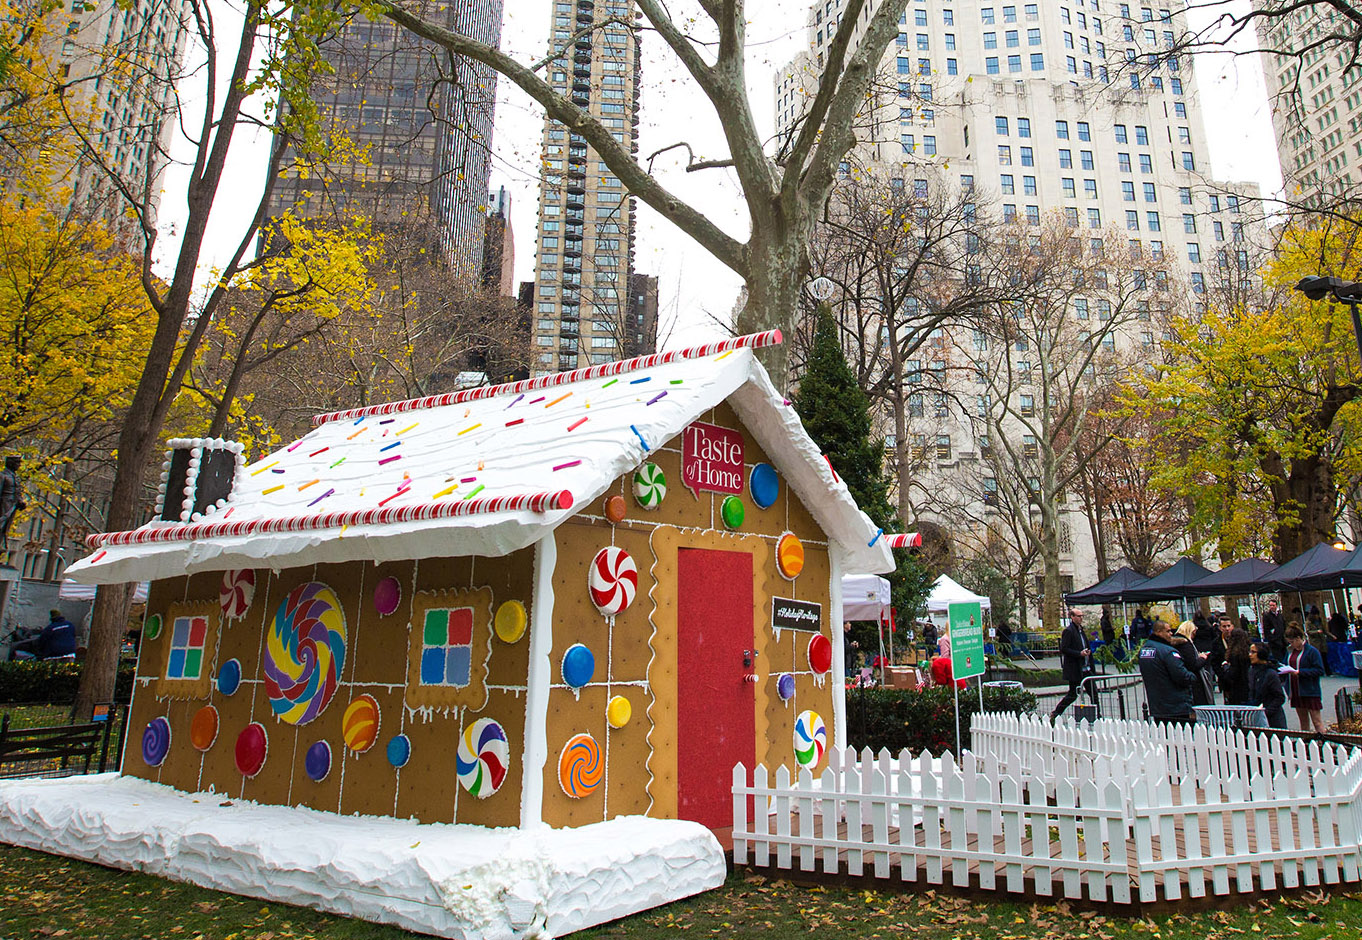 The Best Gingerbread House Displays In And Around Nj Nj Family